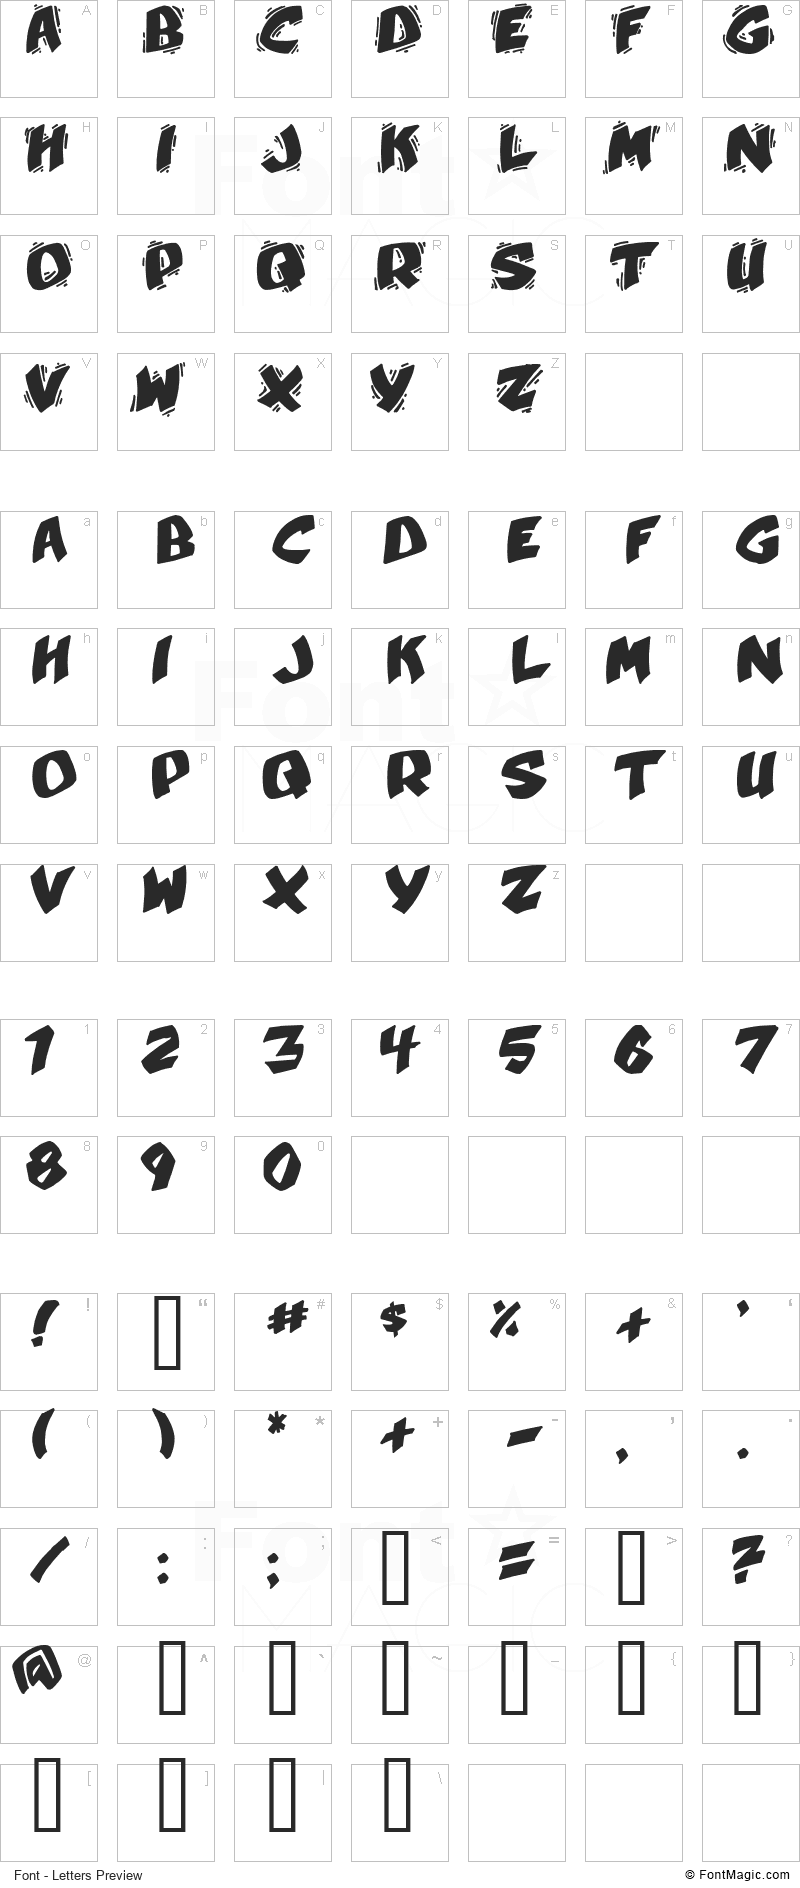 Umberto Font - All Latters Preview Chart